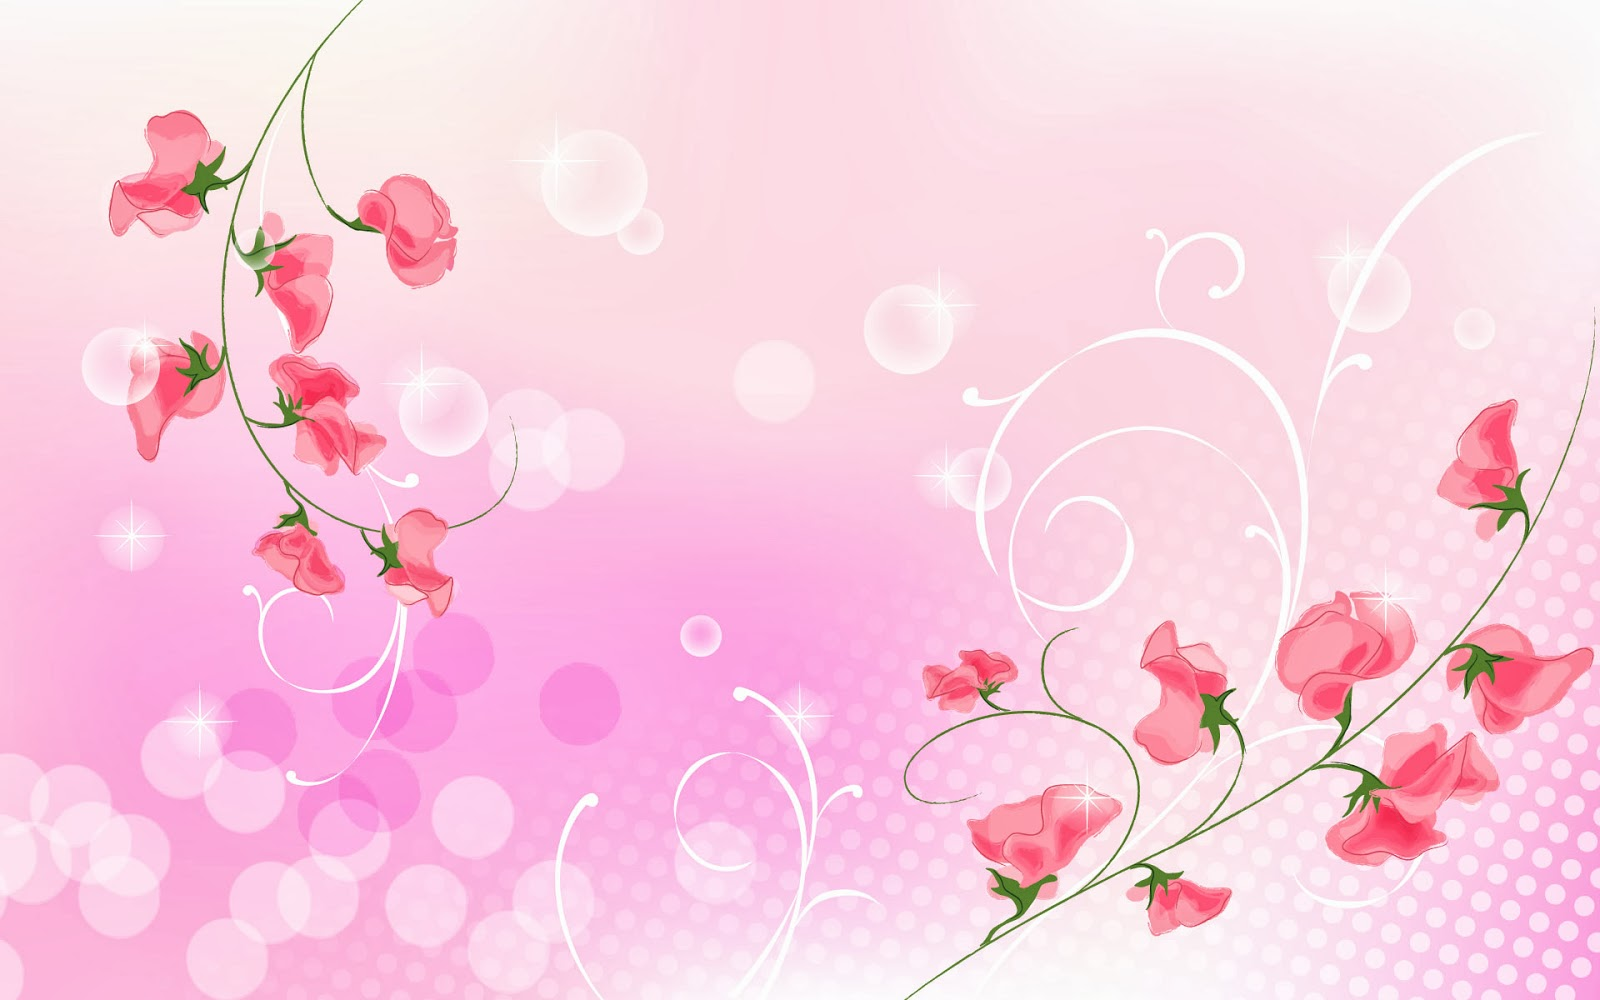 HD Wallpapers Desktop Pink Background DeskTop